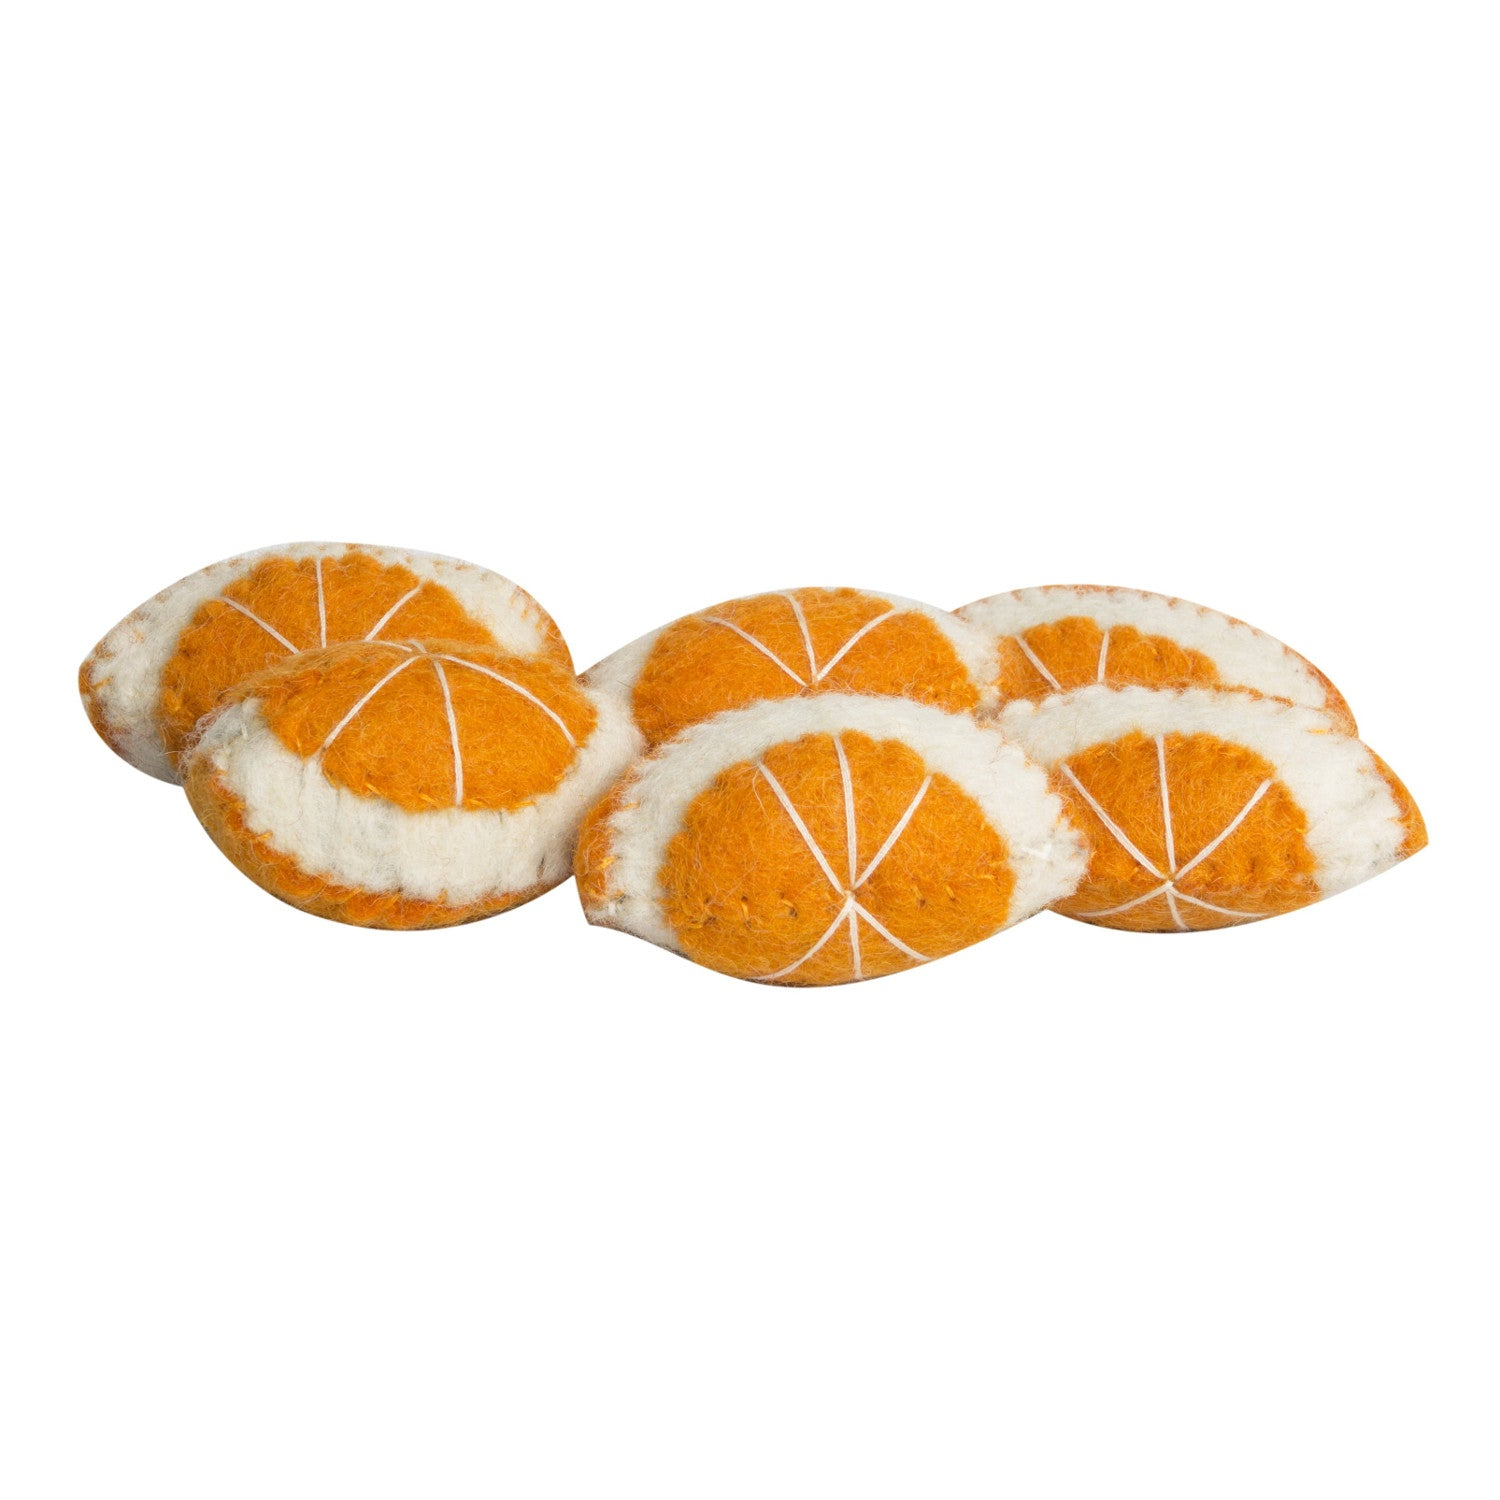 Papoose Felt Food Orange Segment